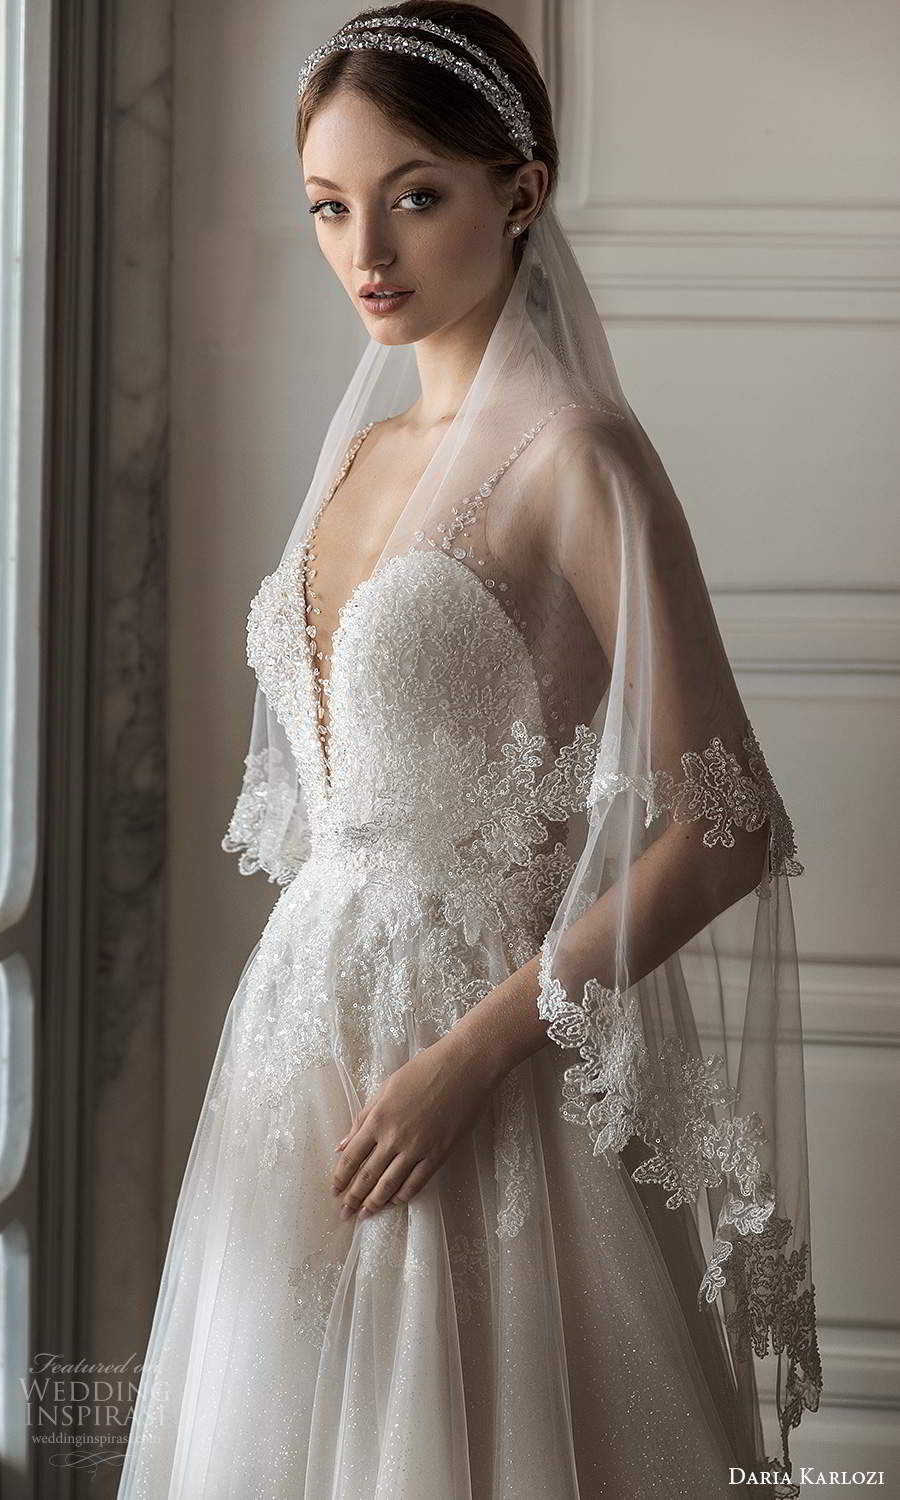 daria karlozi 2021 bridal sleeveless straps heavily embellished bodice a line ball gown wedding dress sheer back chapel train veil (8) zv